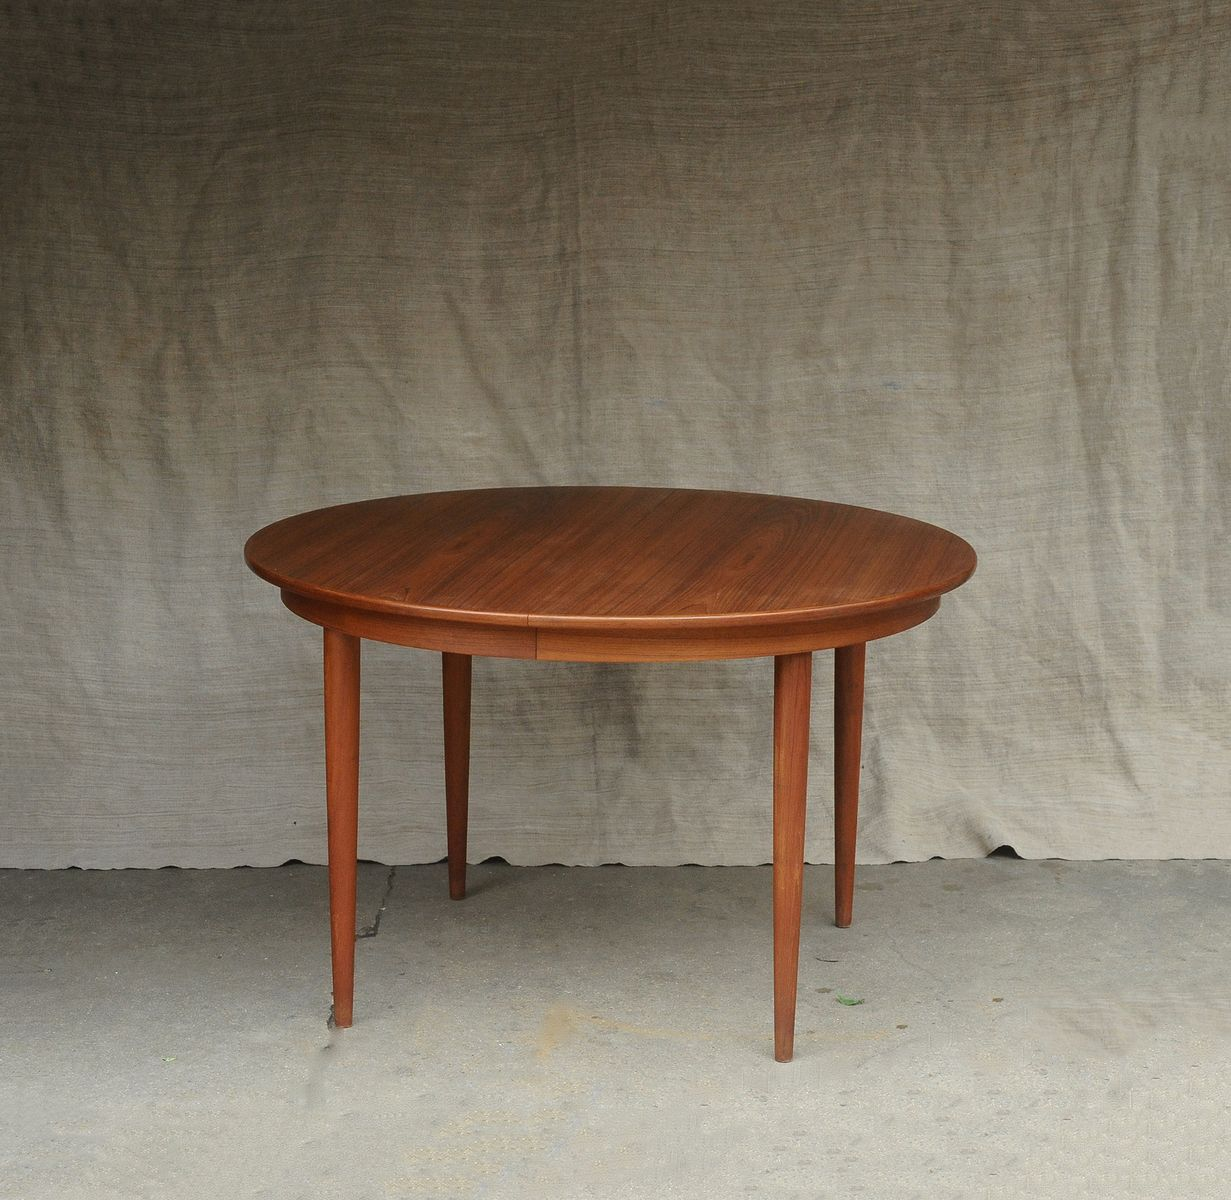 Table ronde extensible mid century scandinave en vente sur for Table extensible en solde